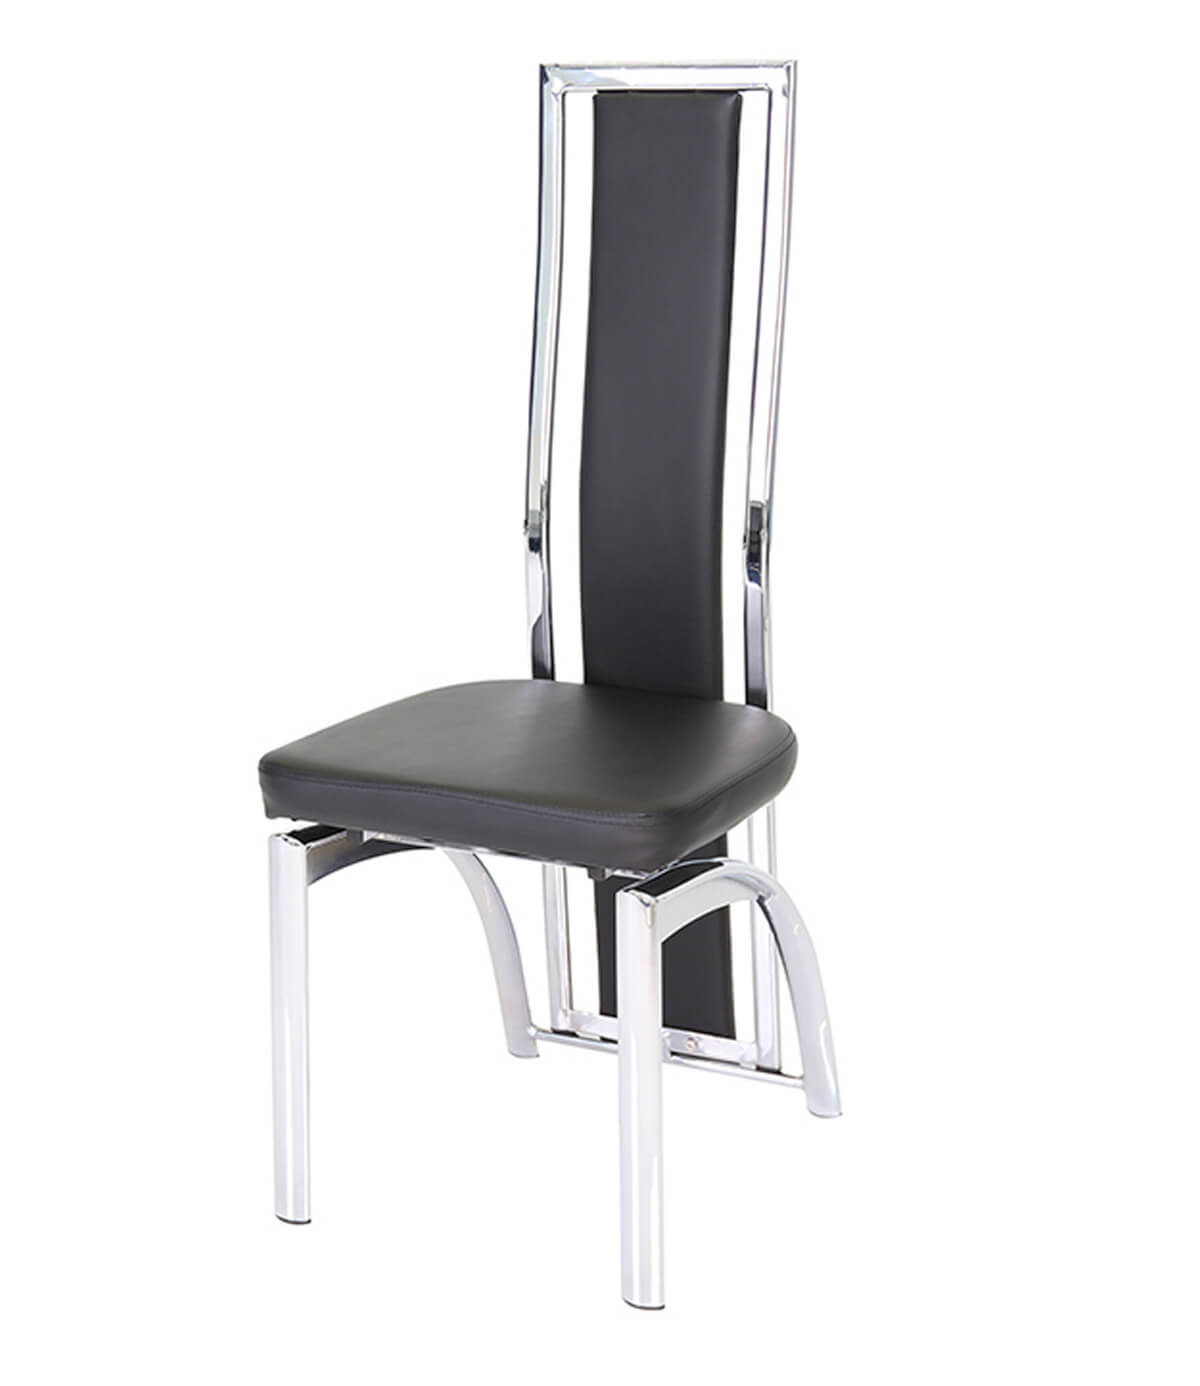 high back chairs uk only rocking chair avalon mayfair black leather dining manchester furniture